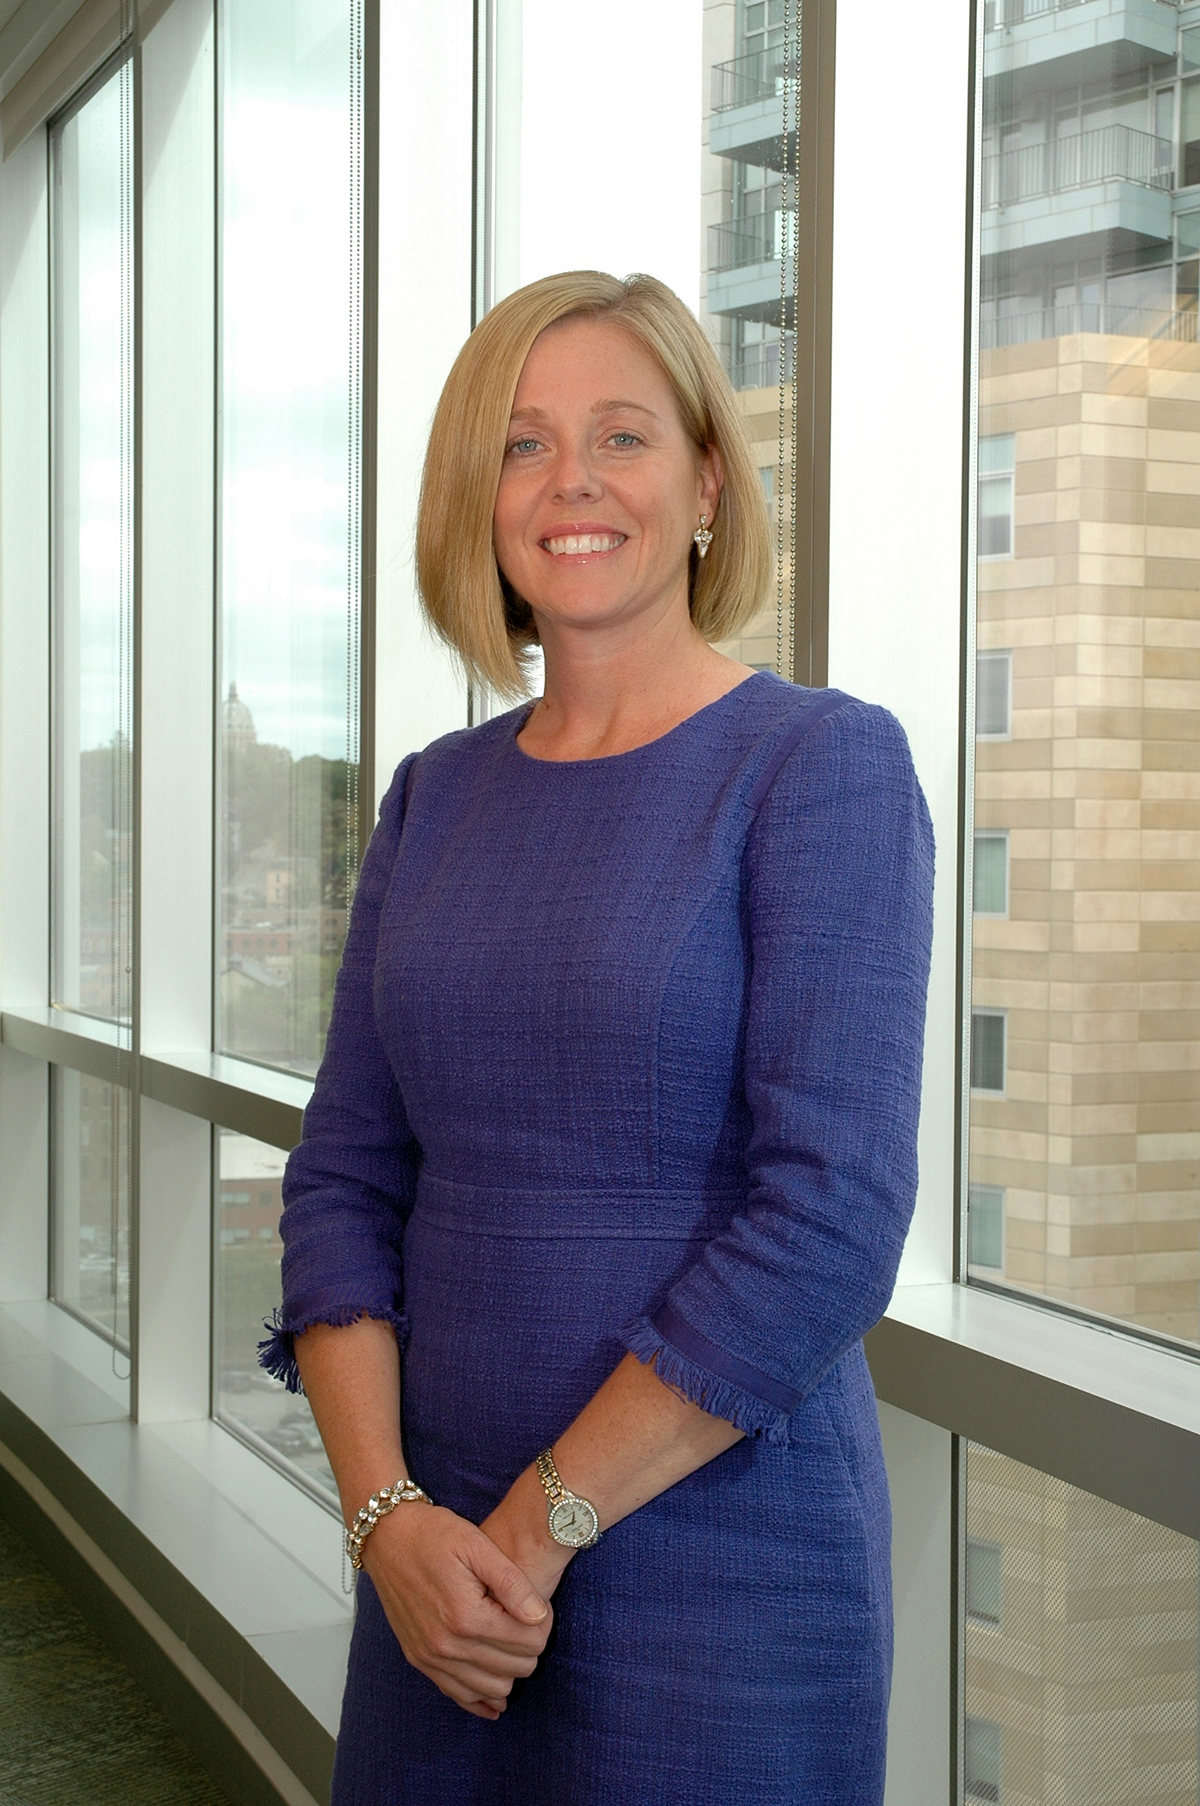 DEAL-MAKER: Blue Cross & Blue Shield of Rhode Island Employer Segment Vice President Tara DeMoura led a team to bring in significant clientele, including the state and Lifespan Corp.  / COURTESY BLUE CROSS & BLUE SHIELD OF RHODE ISLAND